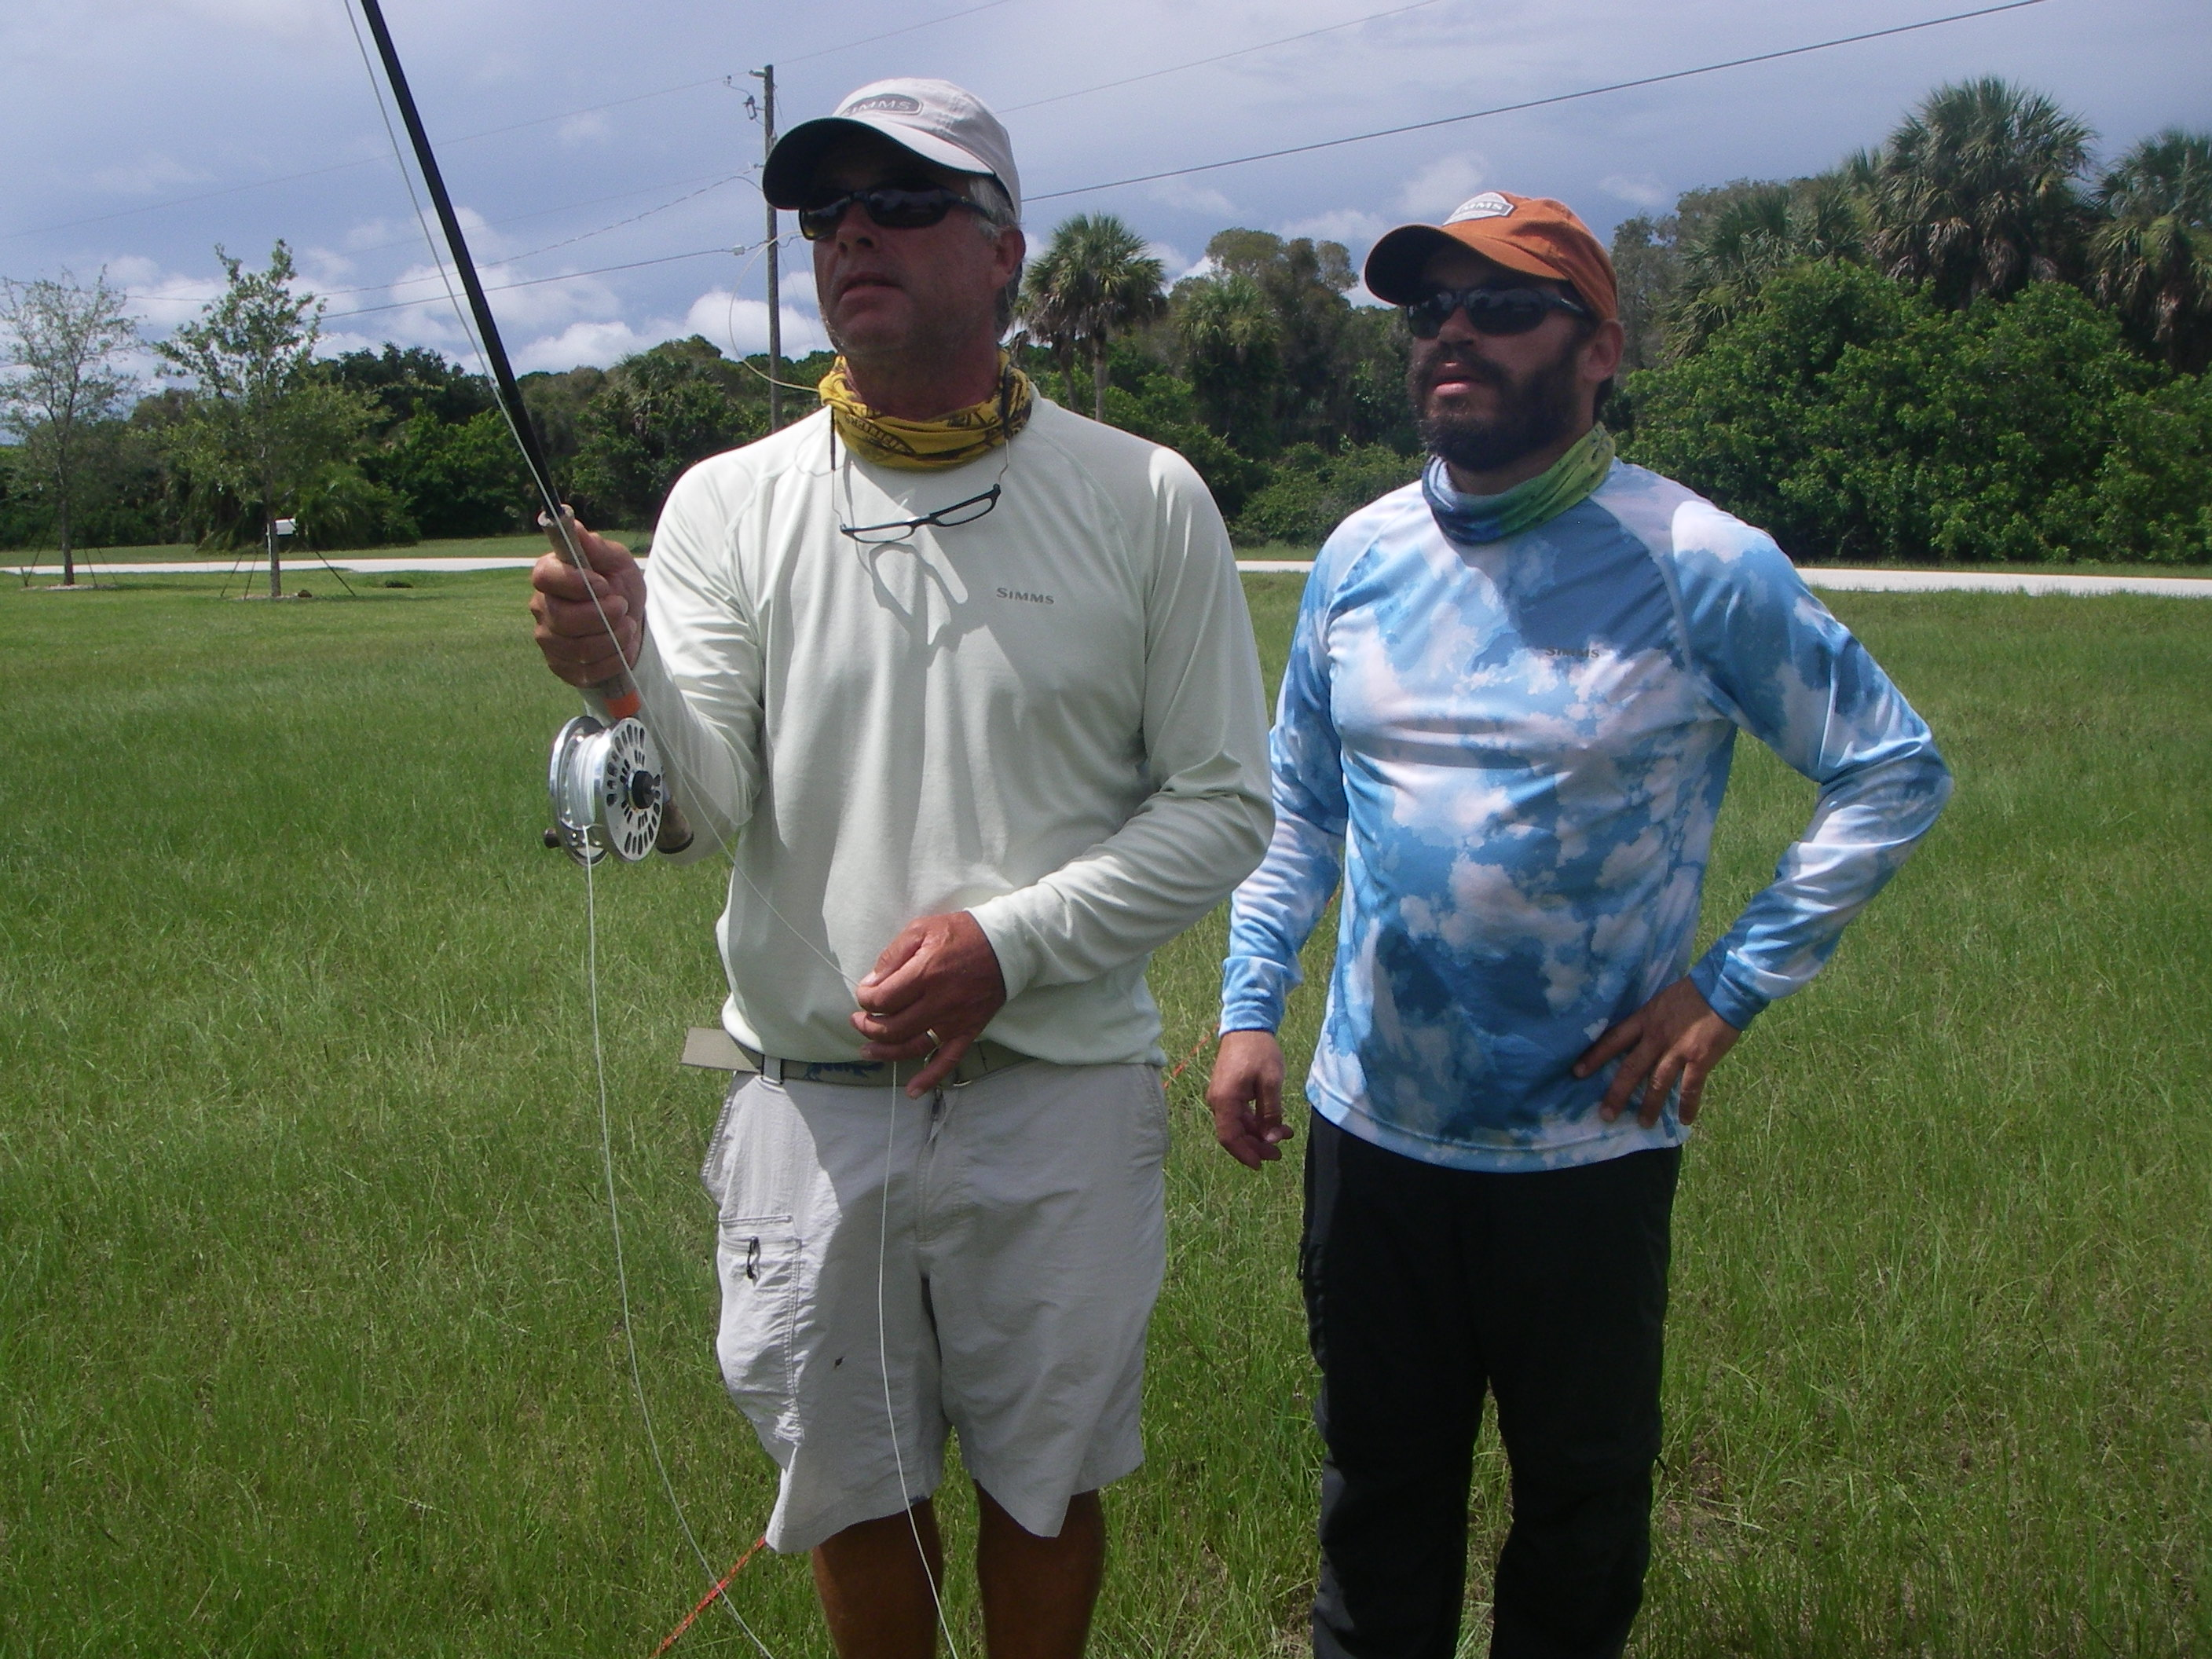 Capt Leo Henriques providing fly fishing casting instruction